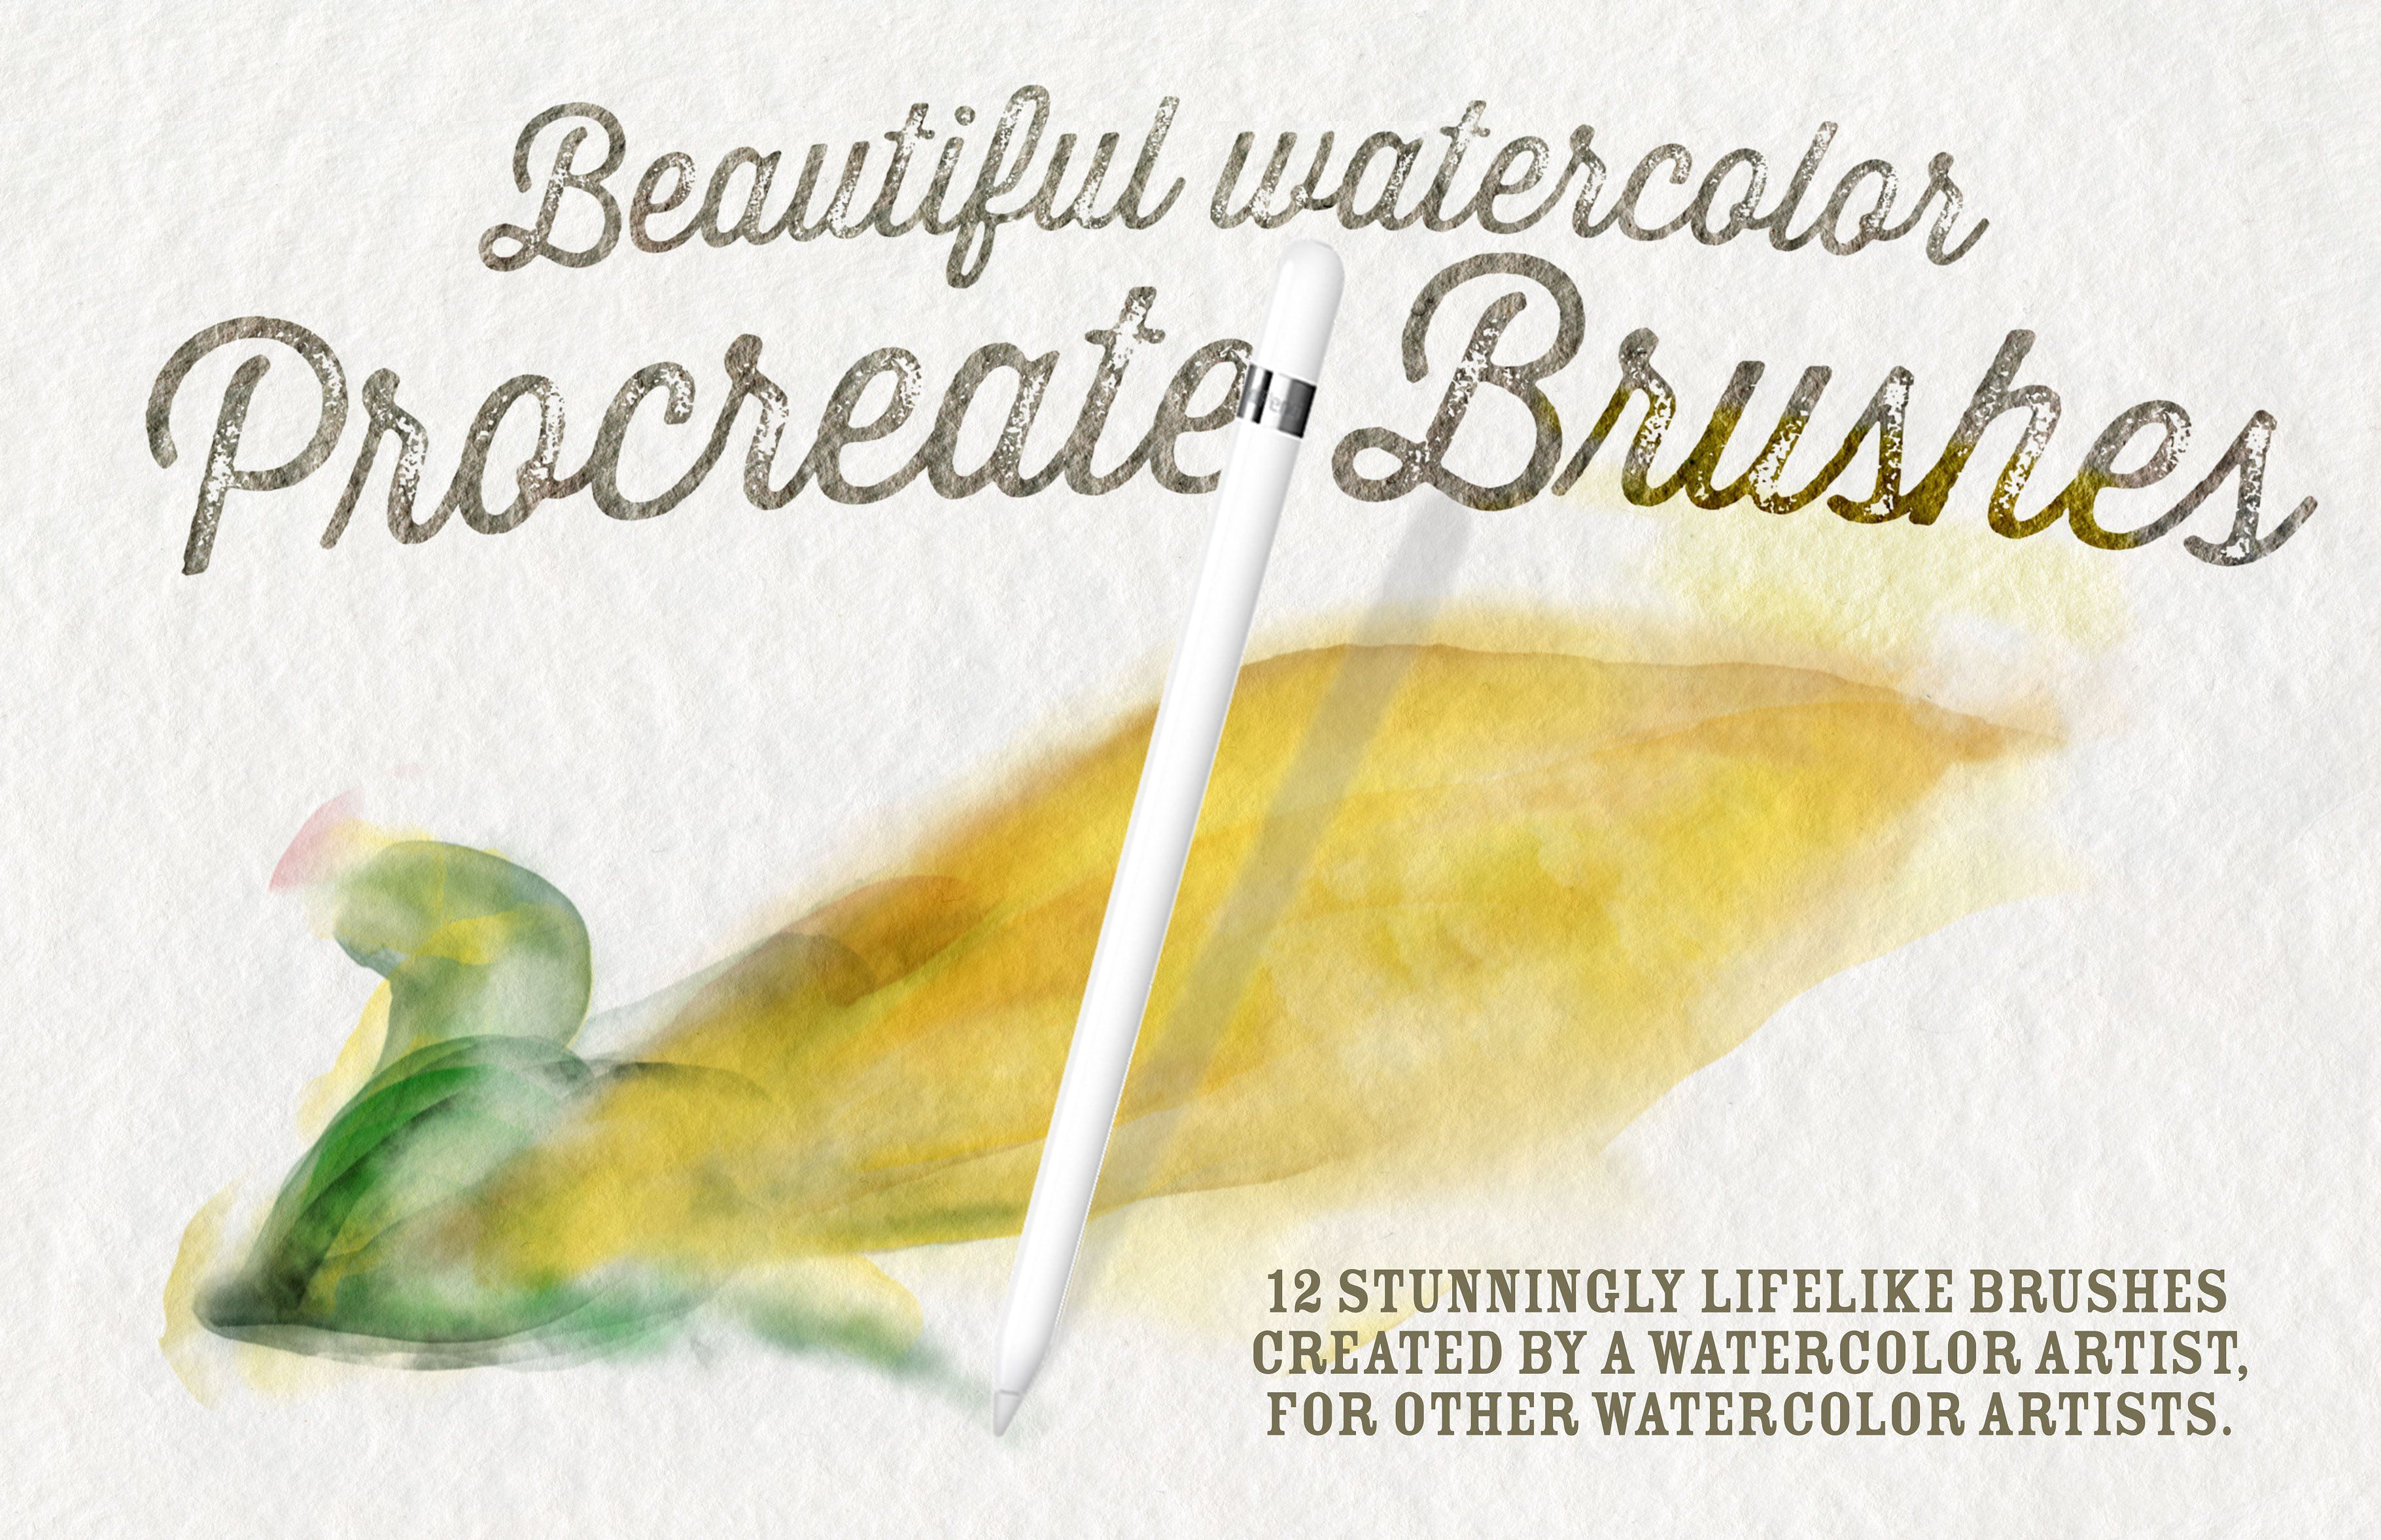 Best Watercolor Brushes Procreate By Oleptic Studios On